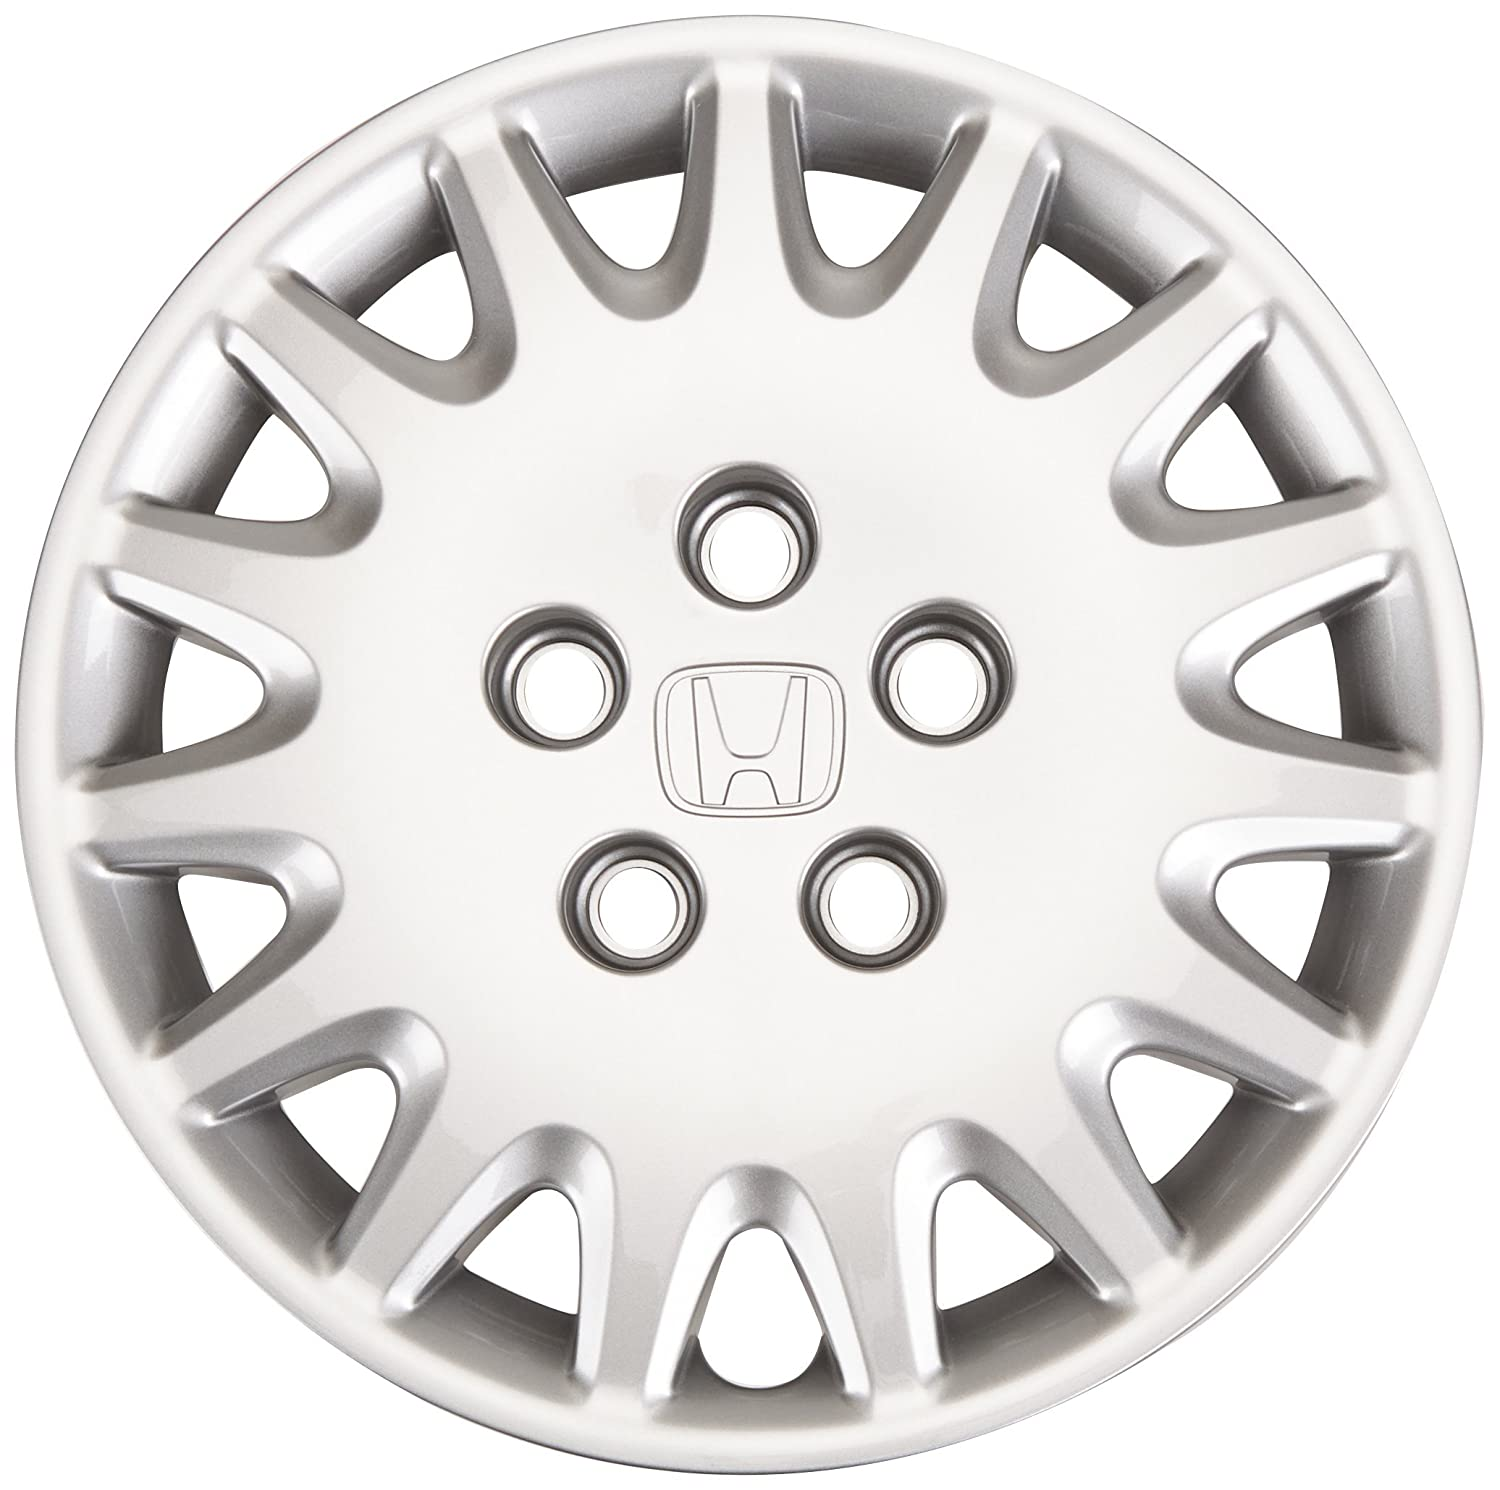 Genuine Honda (44733-SDA-A10) 15' Wheel Cover